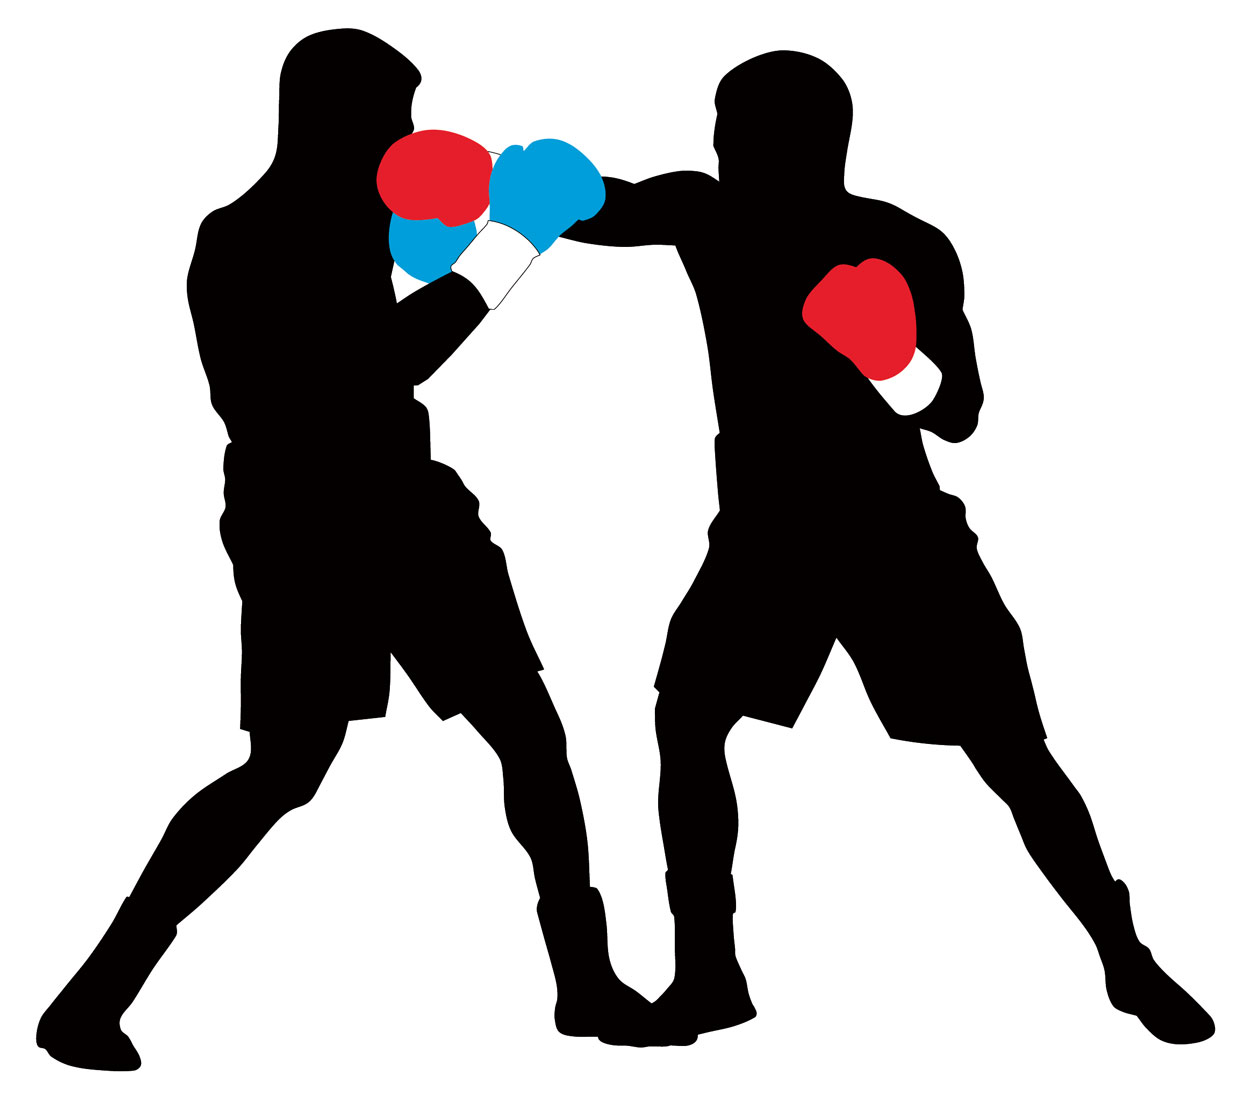 Free Boxing Silhouette Free Cliparts That You Can Download To You